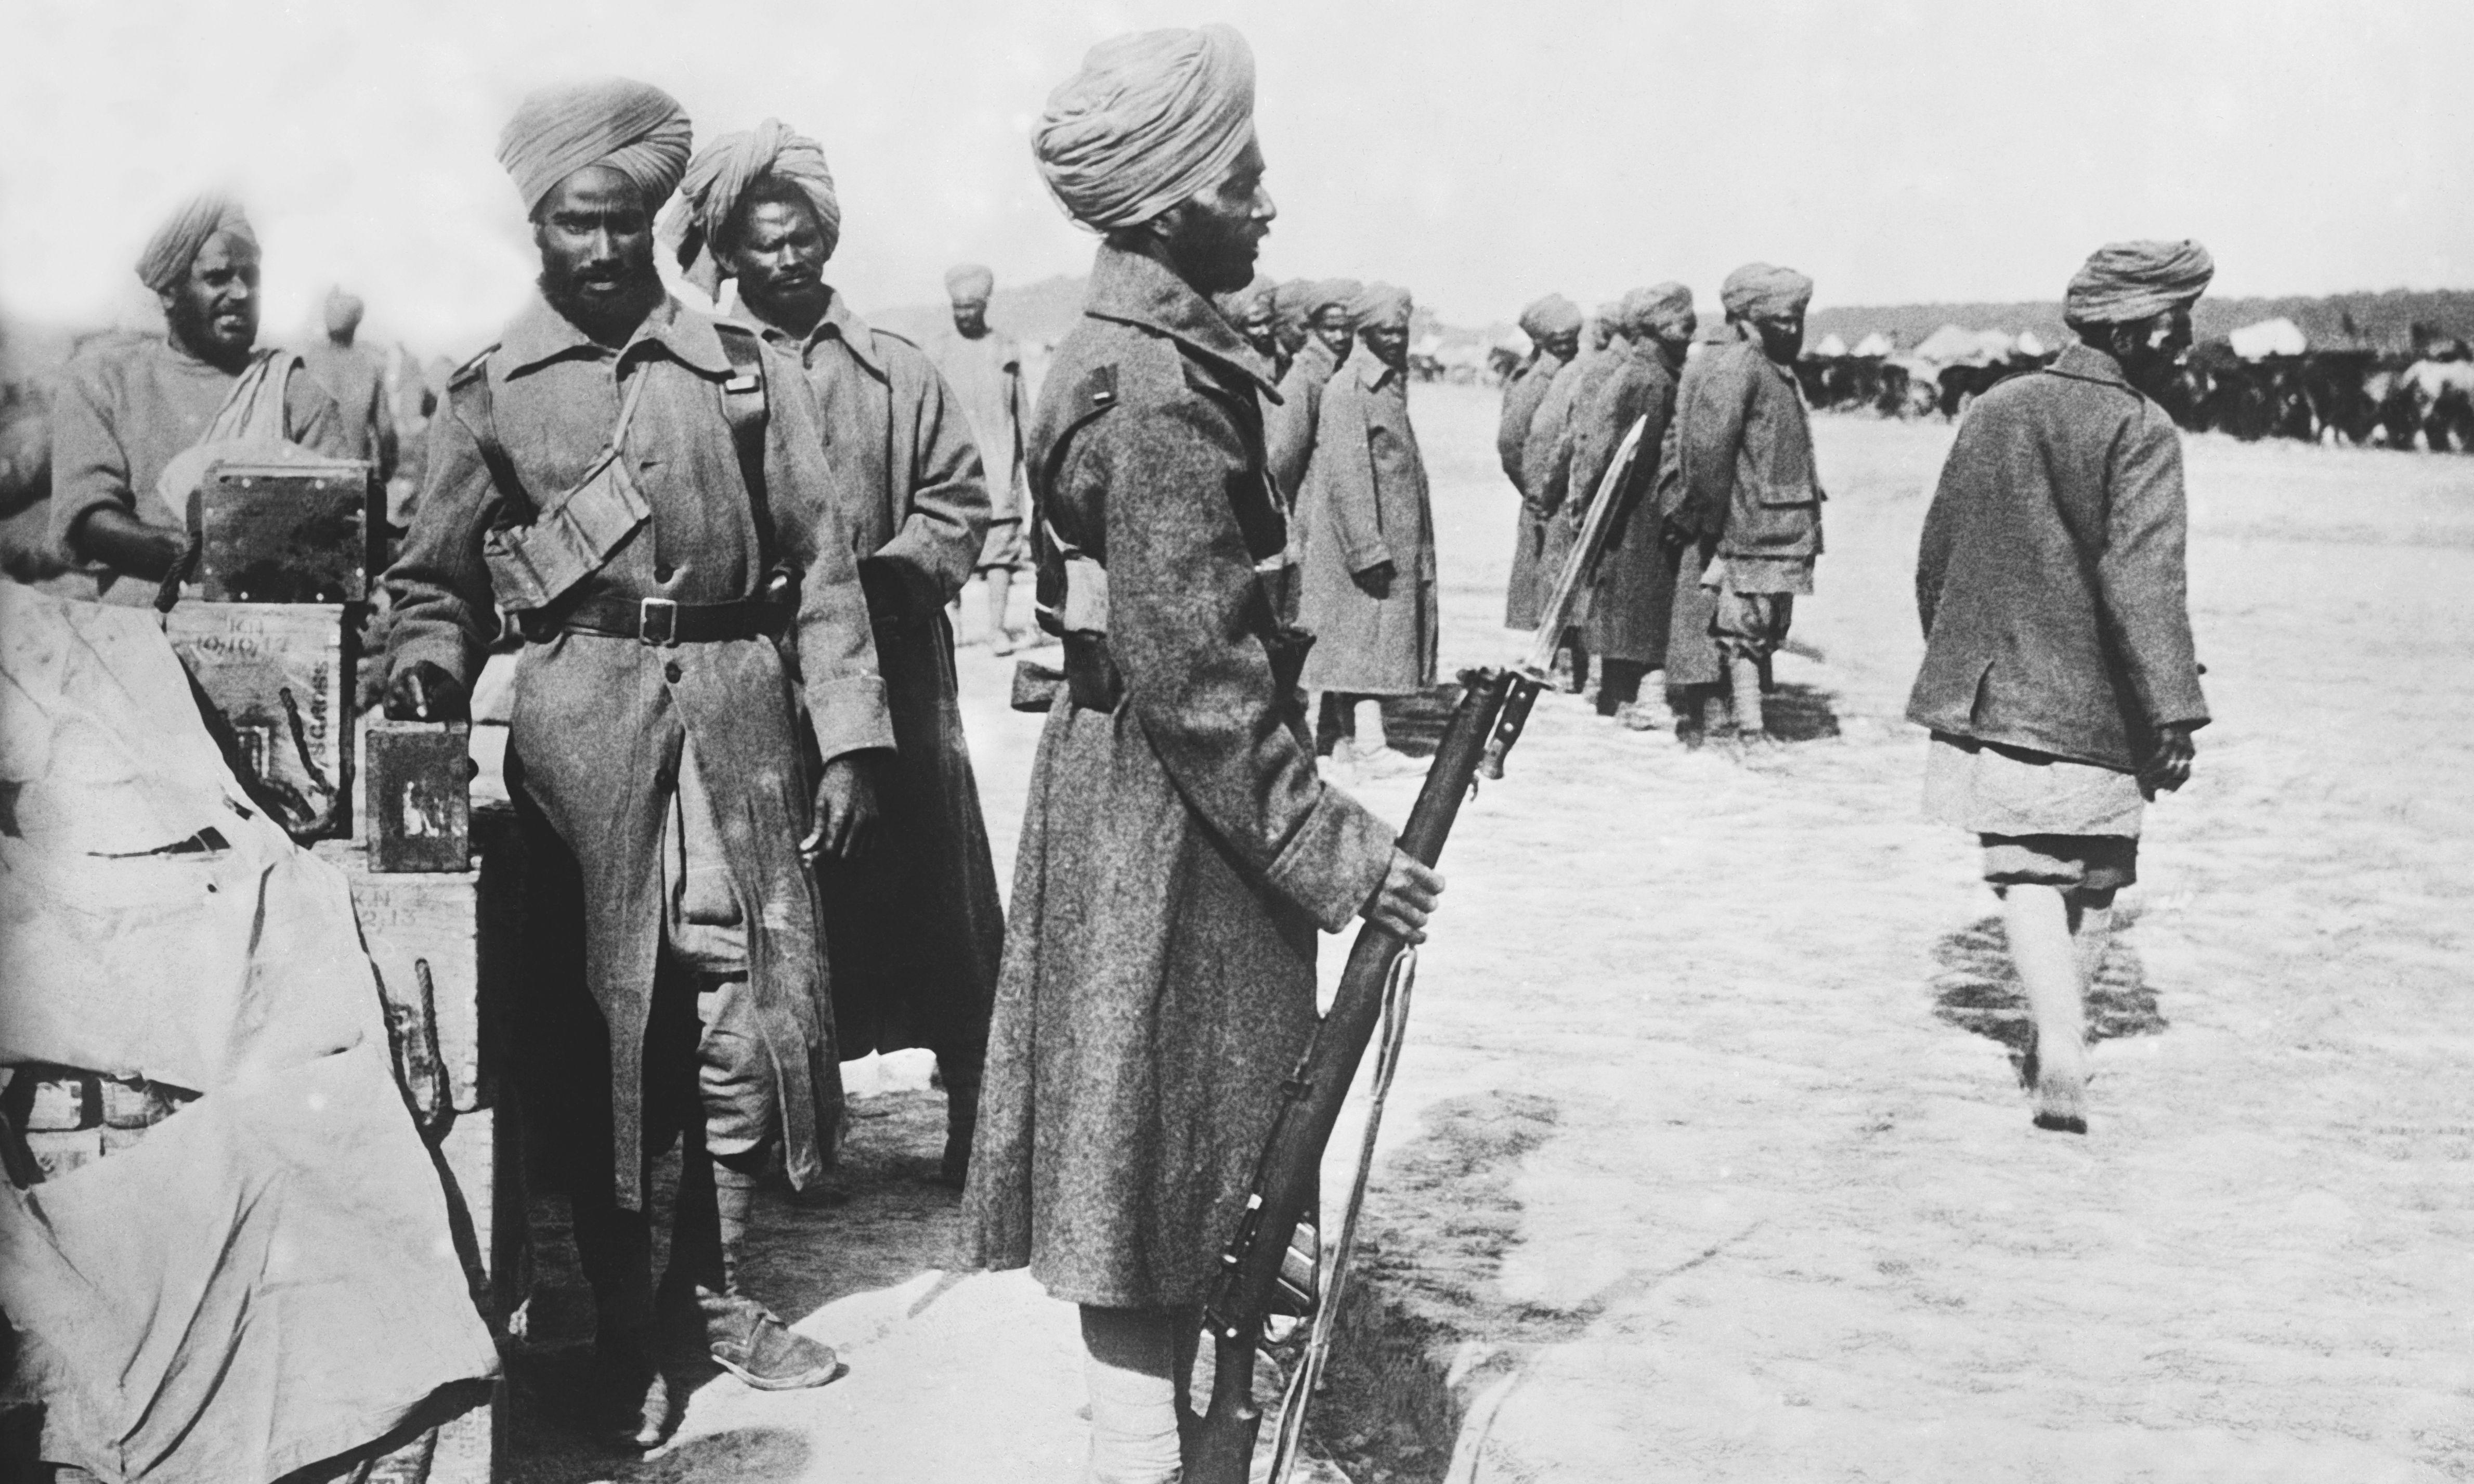 How Kipling helped quell an Indian mutiny in first world war trenches